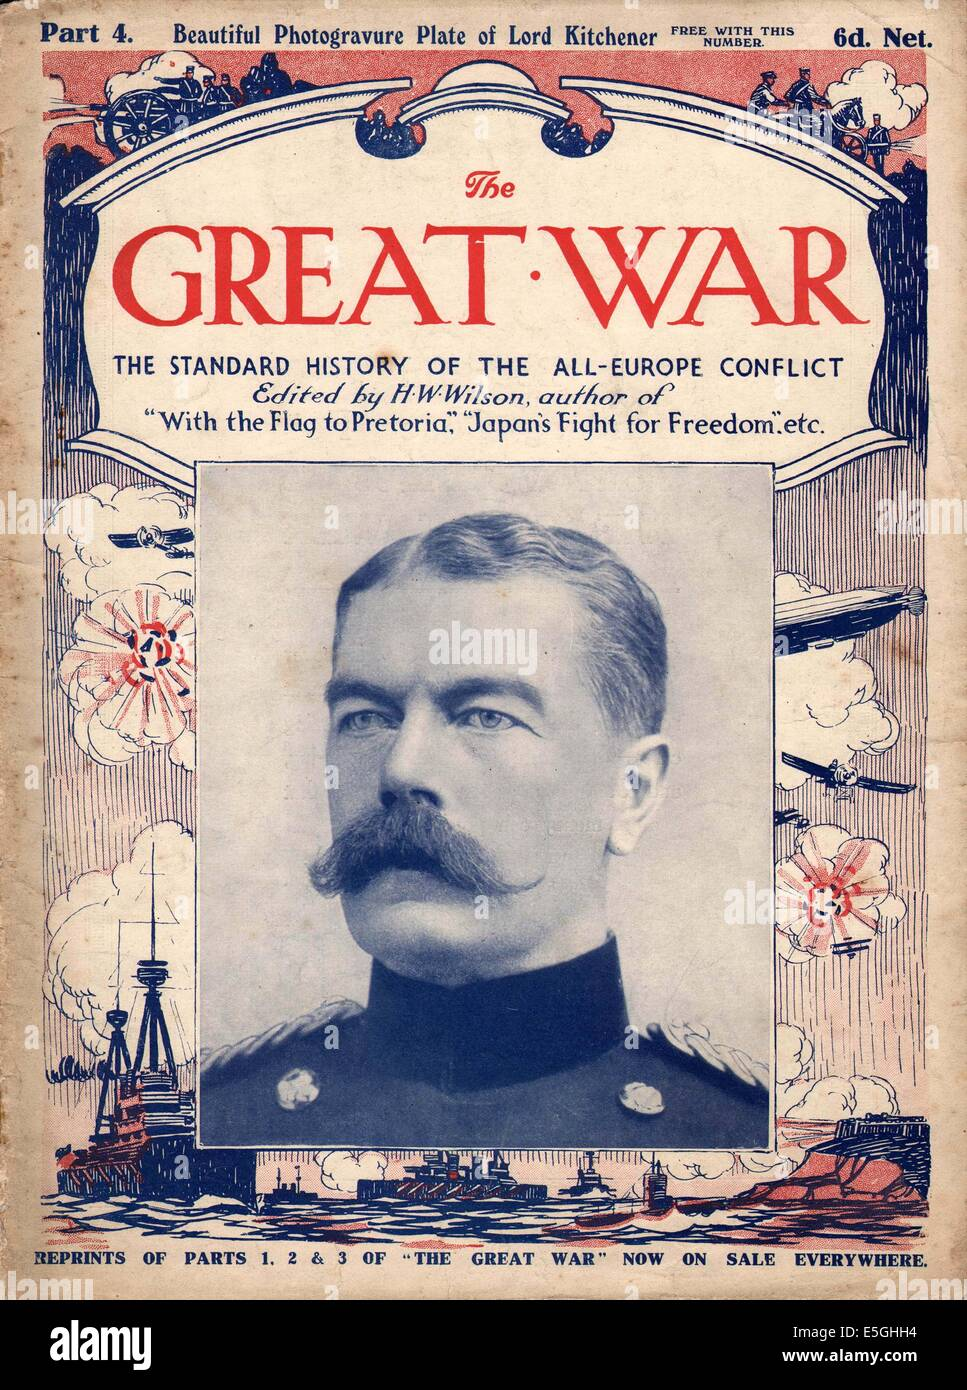 1916 The Great War front page magazine Lord Kitchener Stock Photo